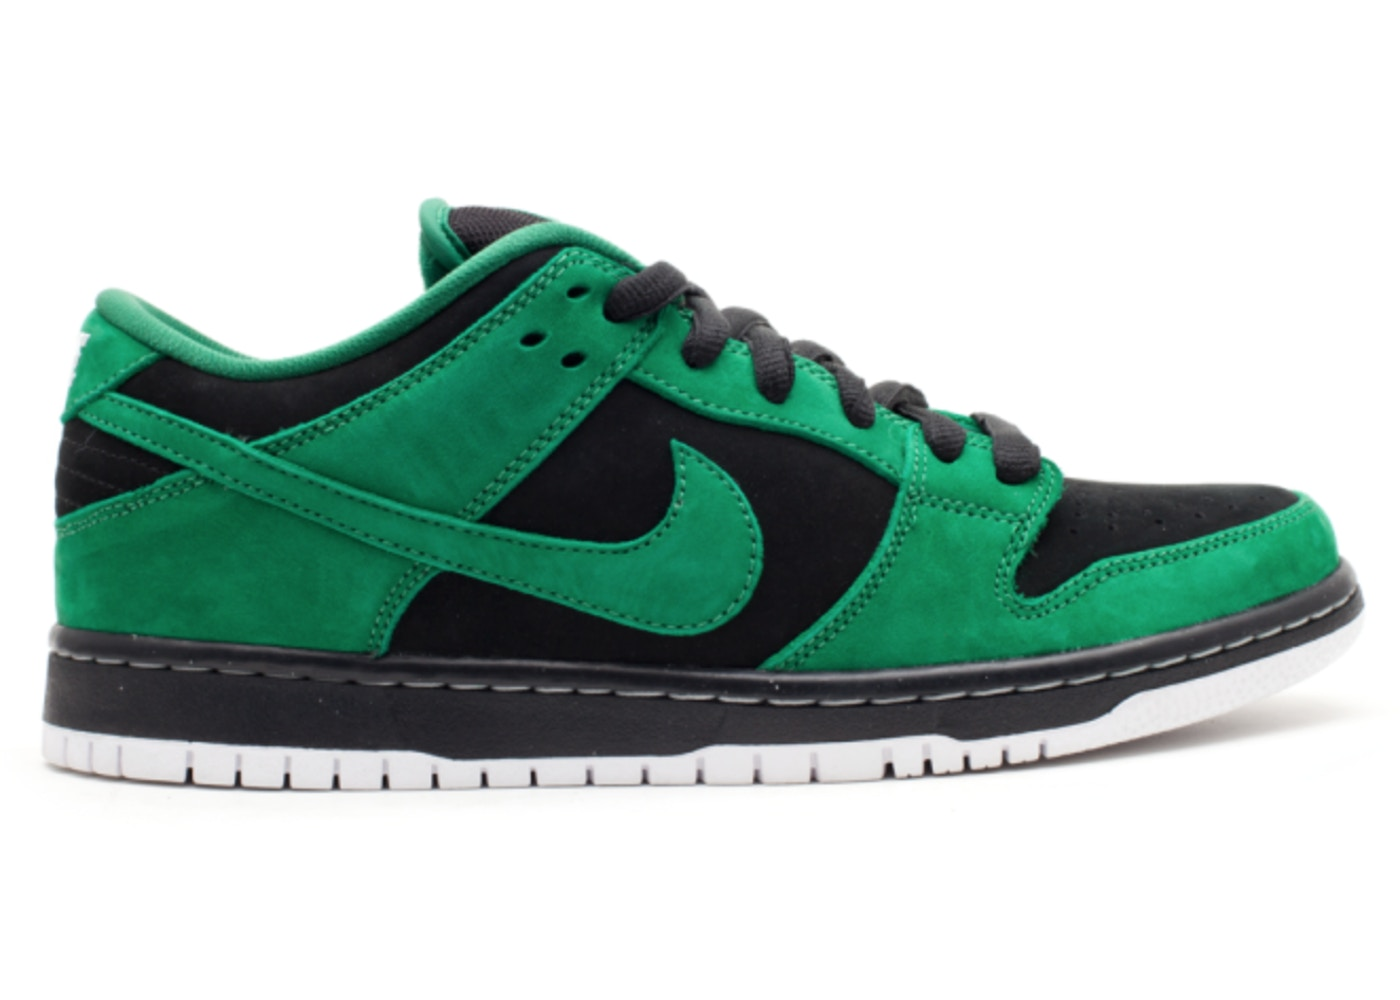 60eccf0813b0d8 Nike Dunk SB Low Pine Green Black - 313170-306